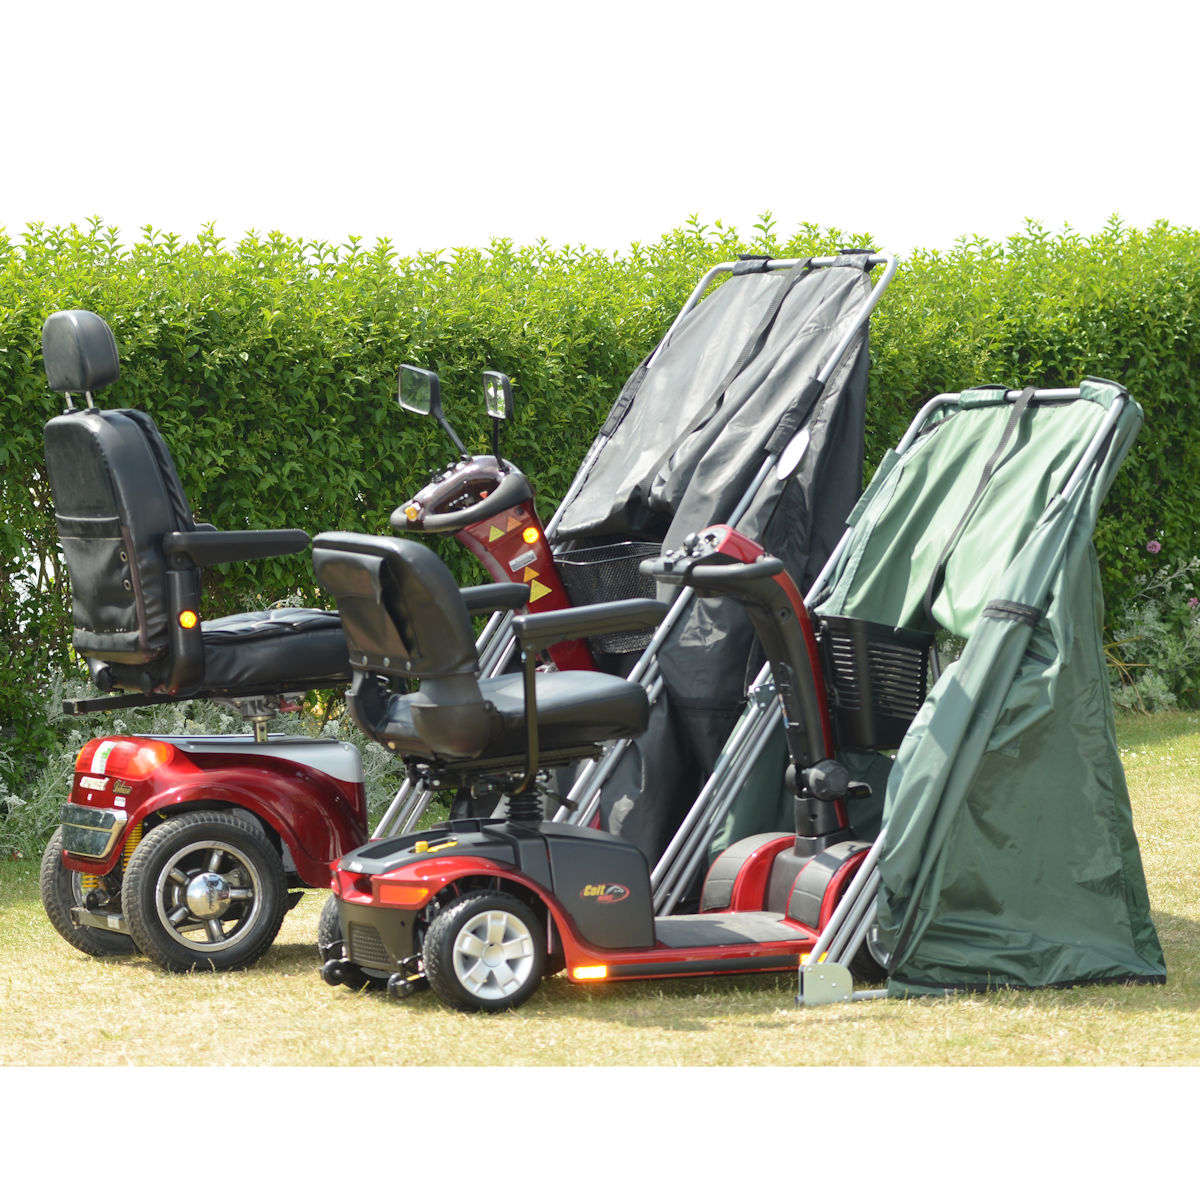 Mobility Scooter Shelter in Large and Medium Sizes